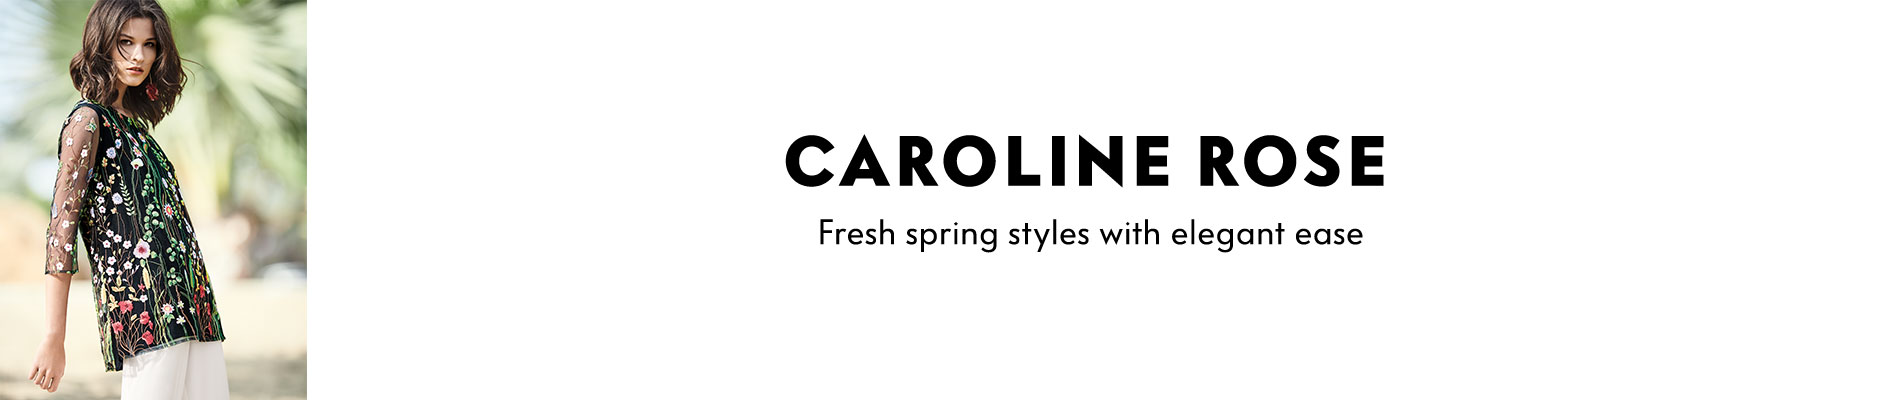 Caroline Rose - Fresh spring styles with elegant ease